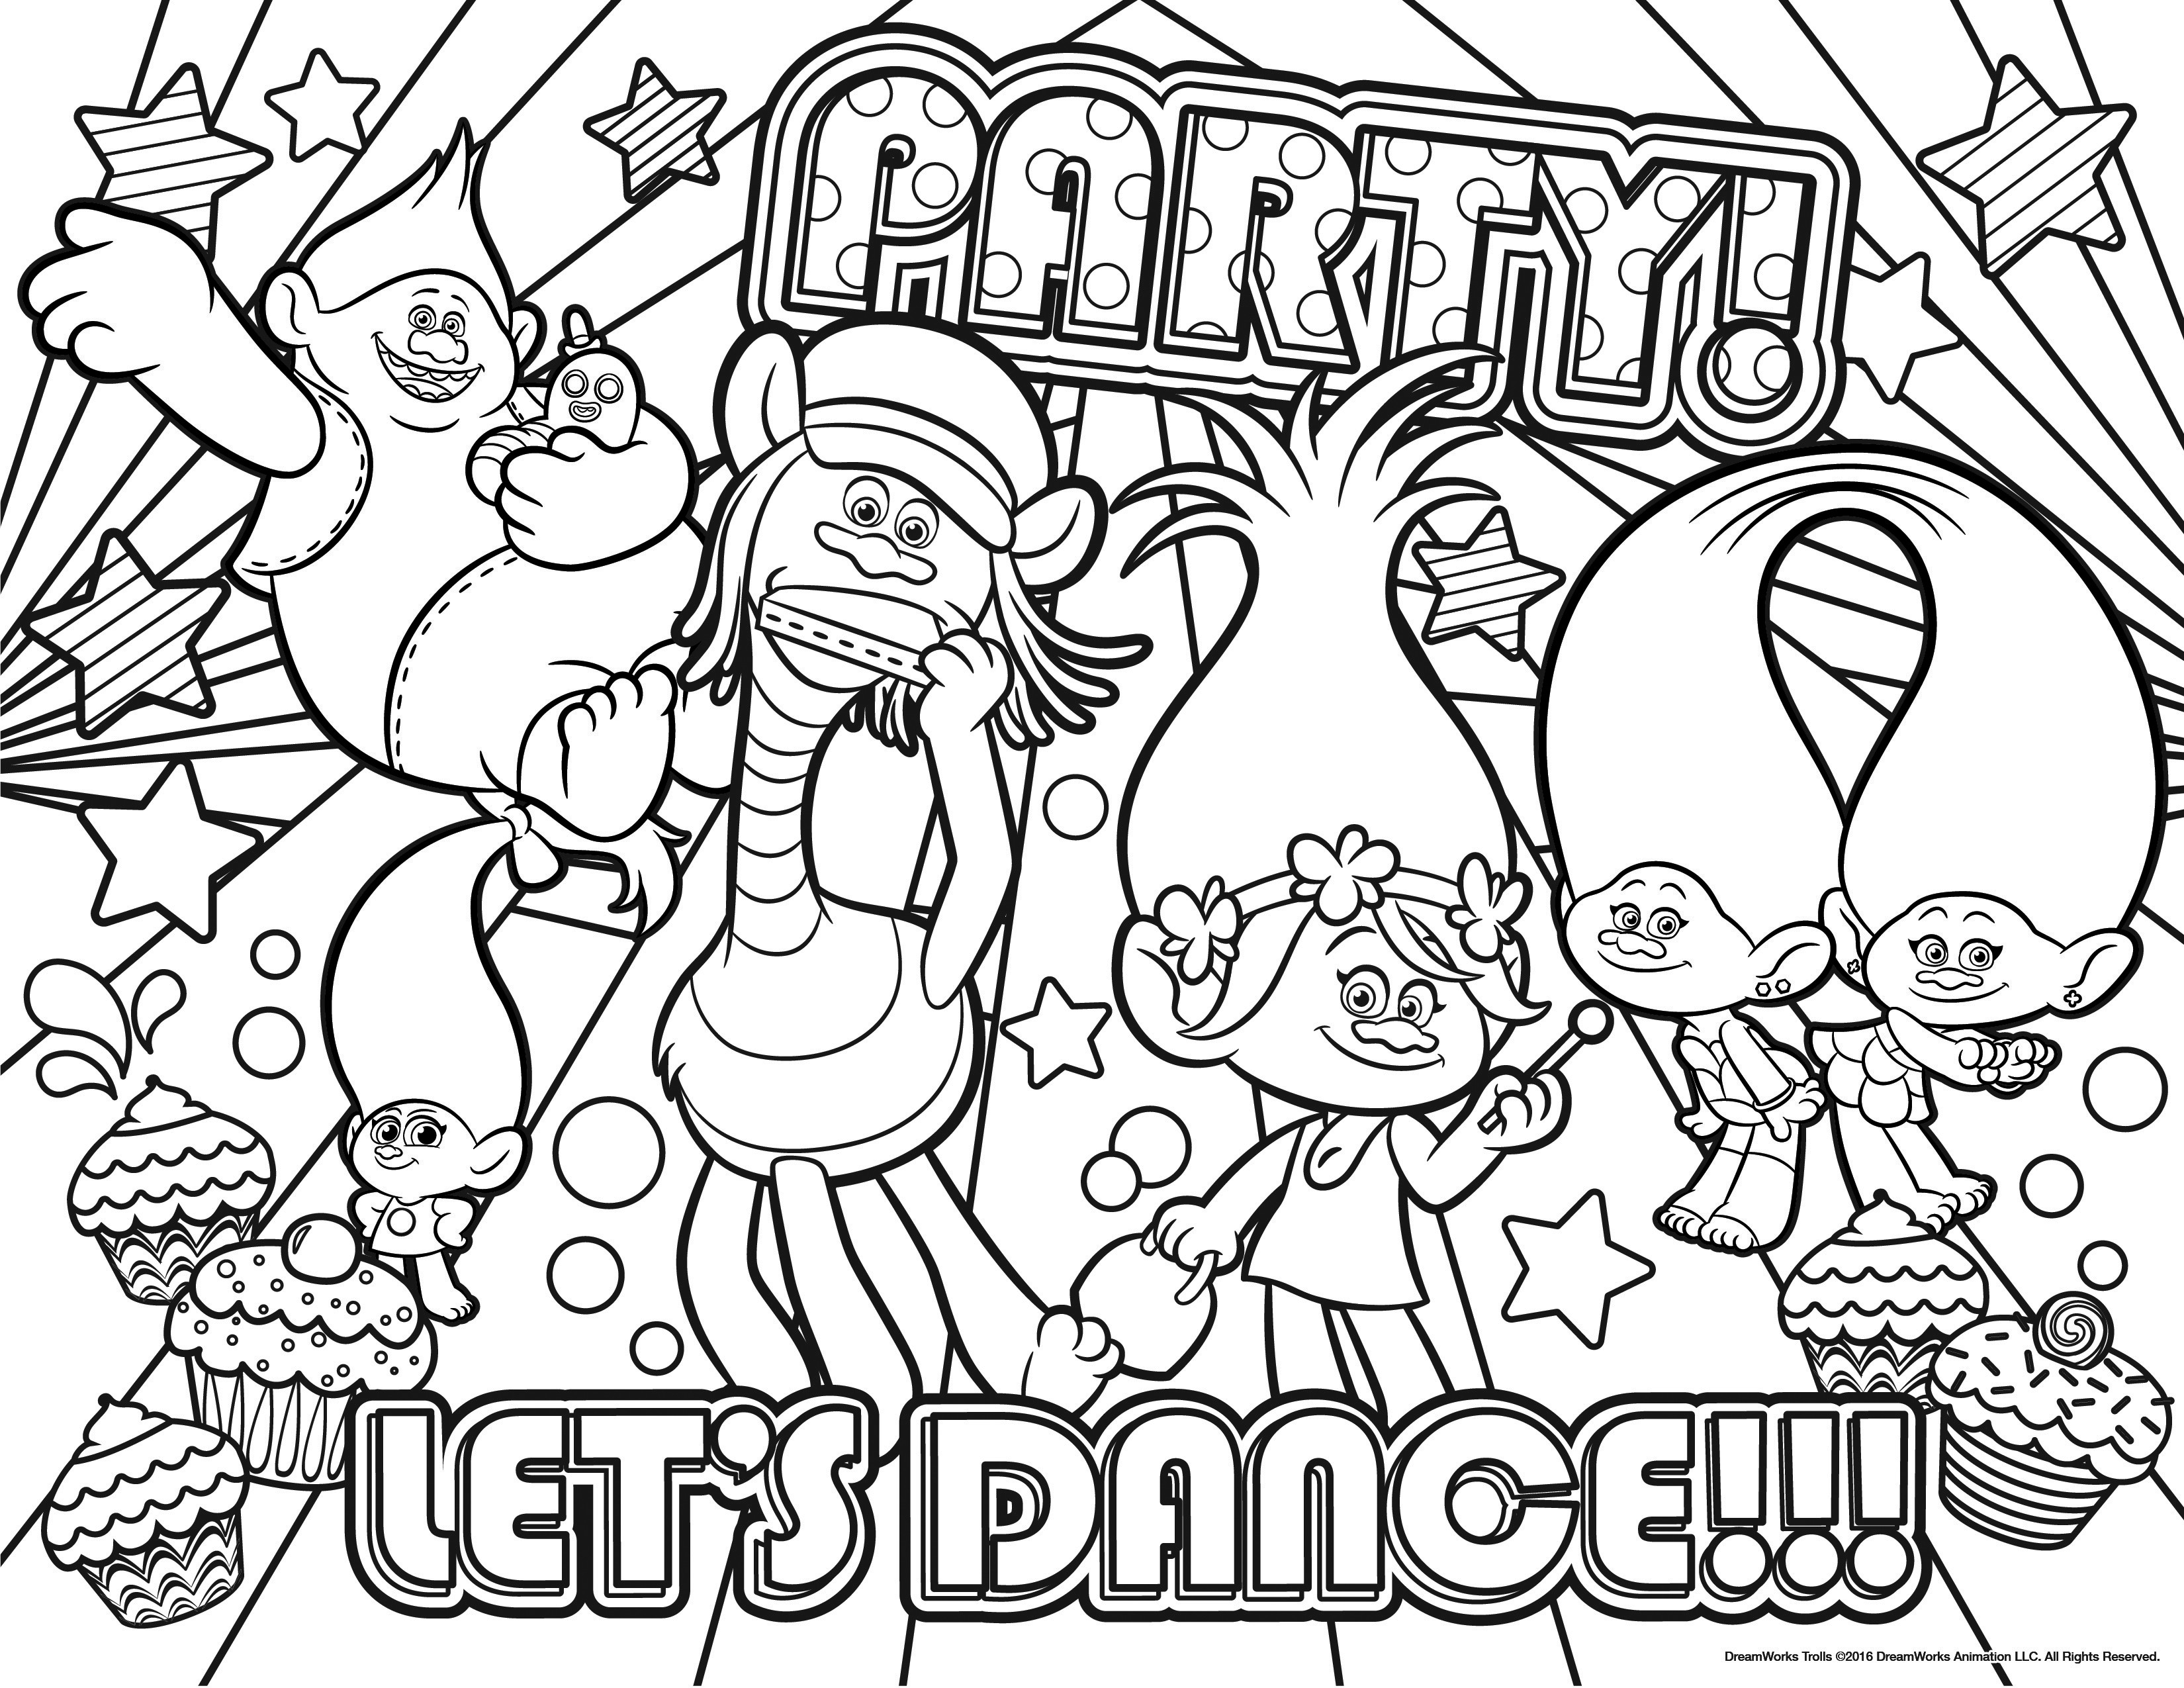 Christmas Coloring Pages Trolls With New Free Disney Printable Design